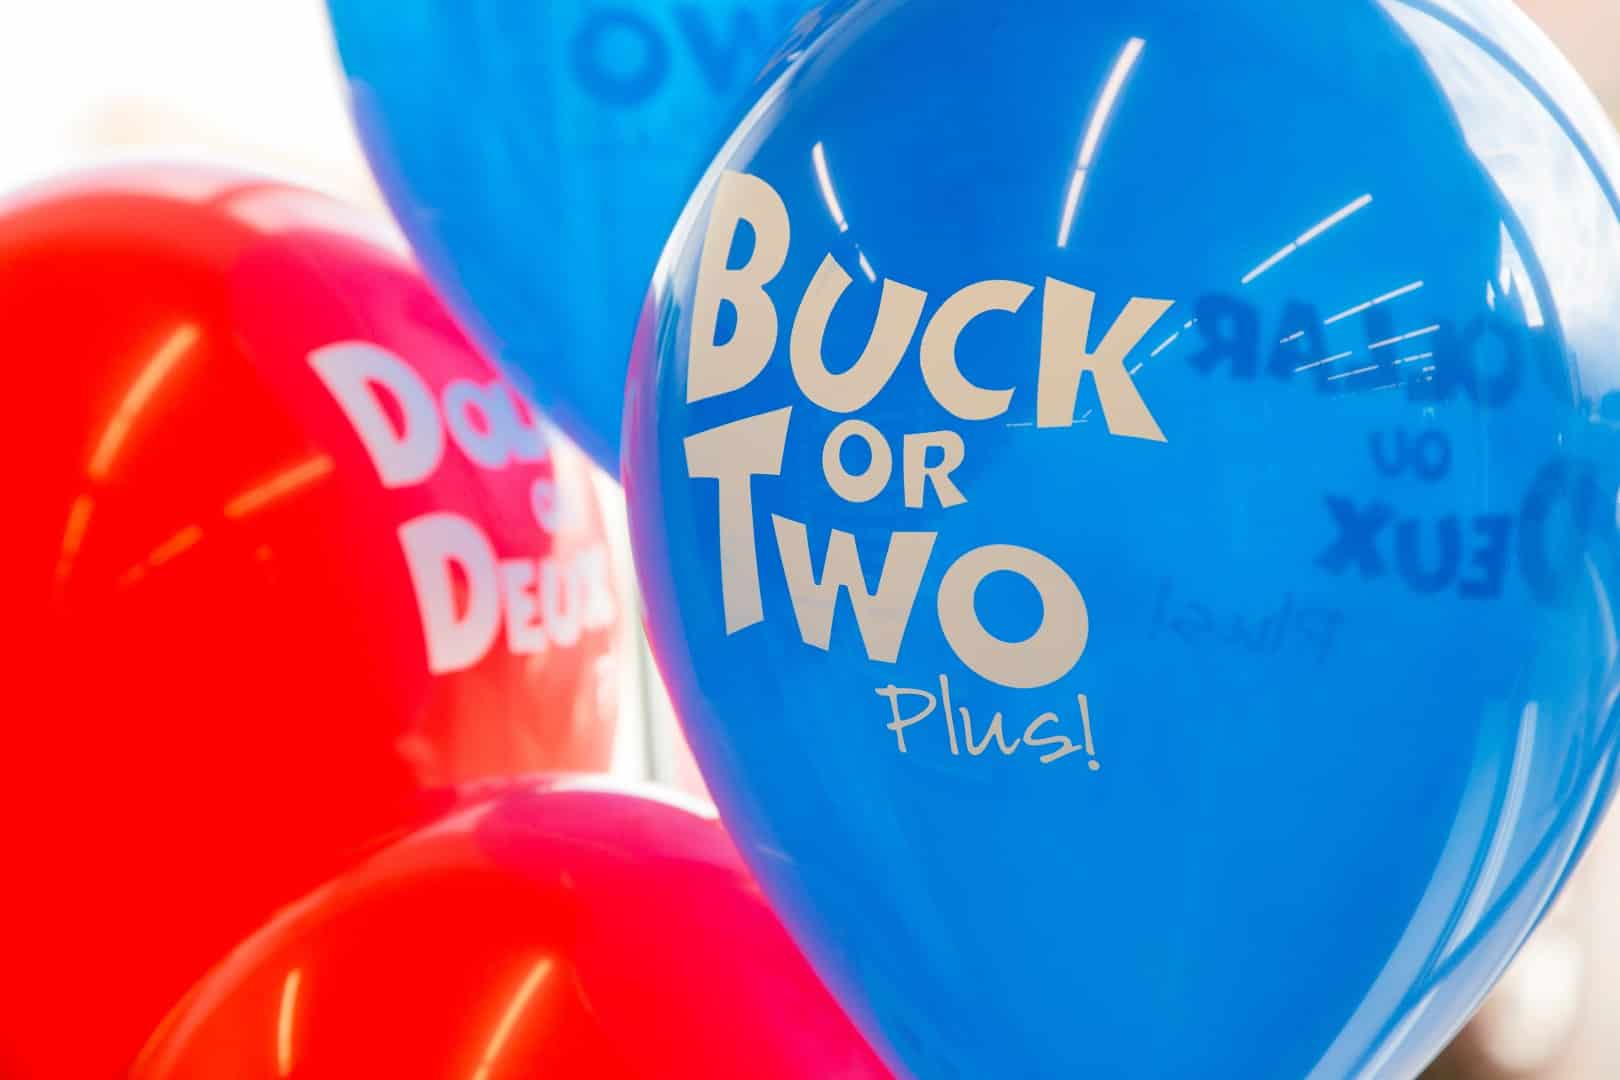 Join Our Family Of Buck Or Two Plus Franchisees